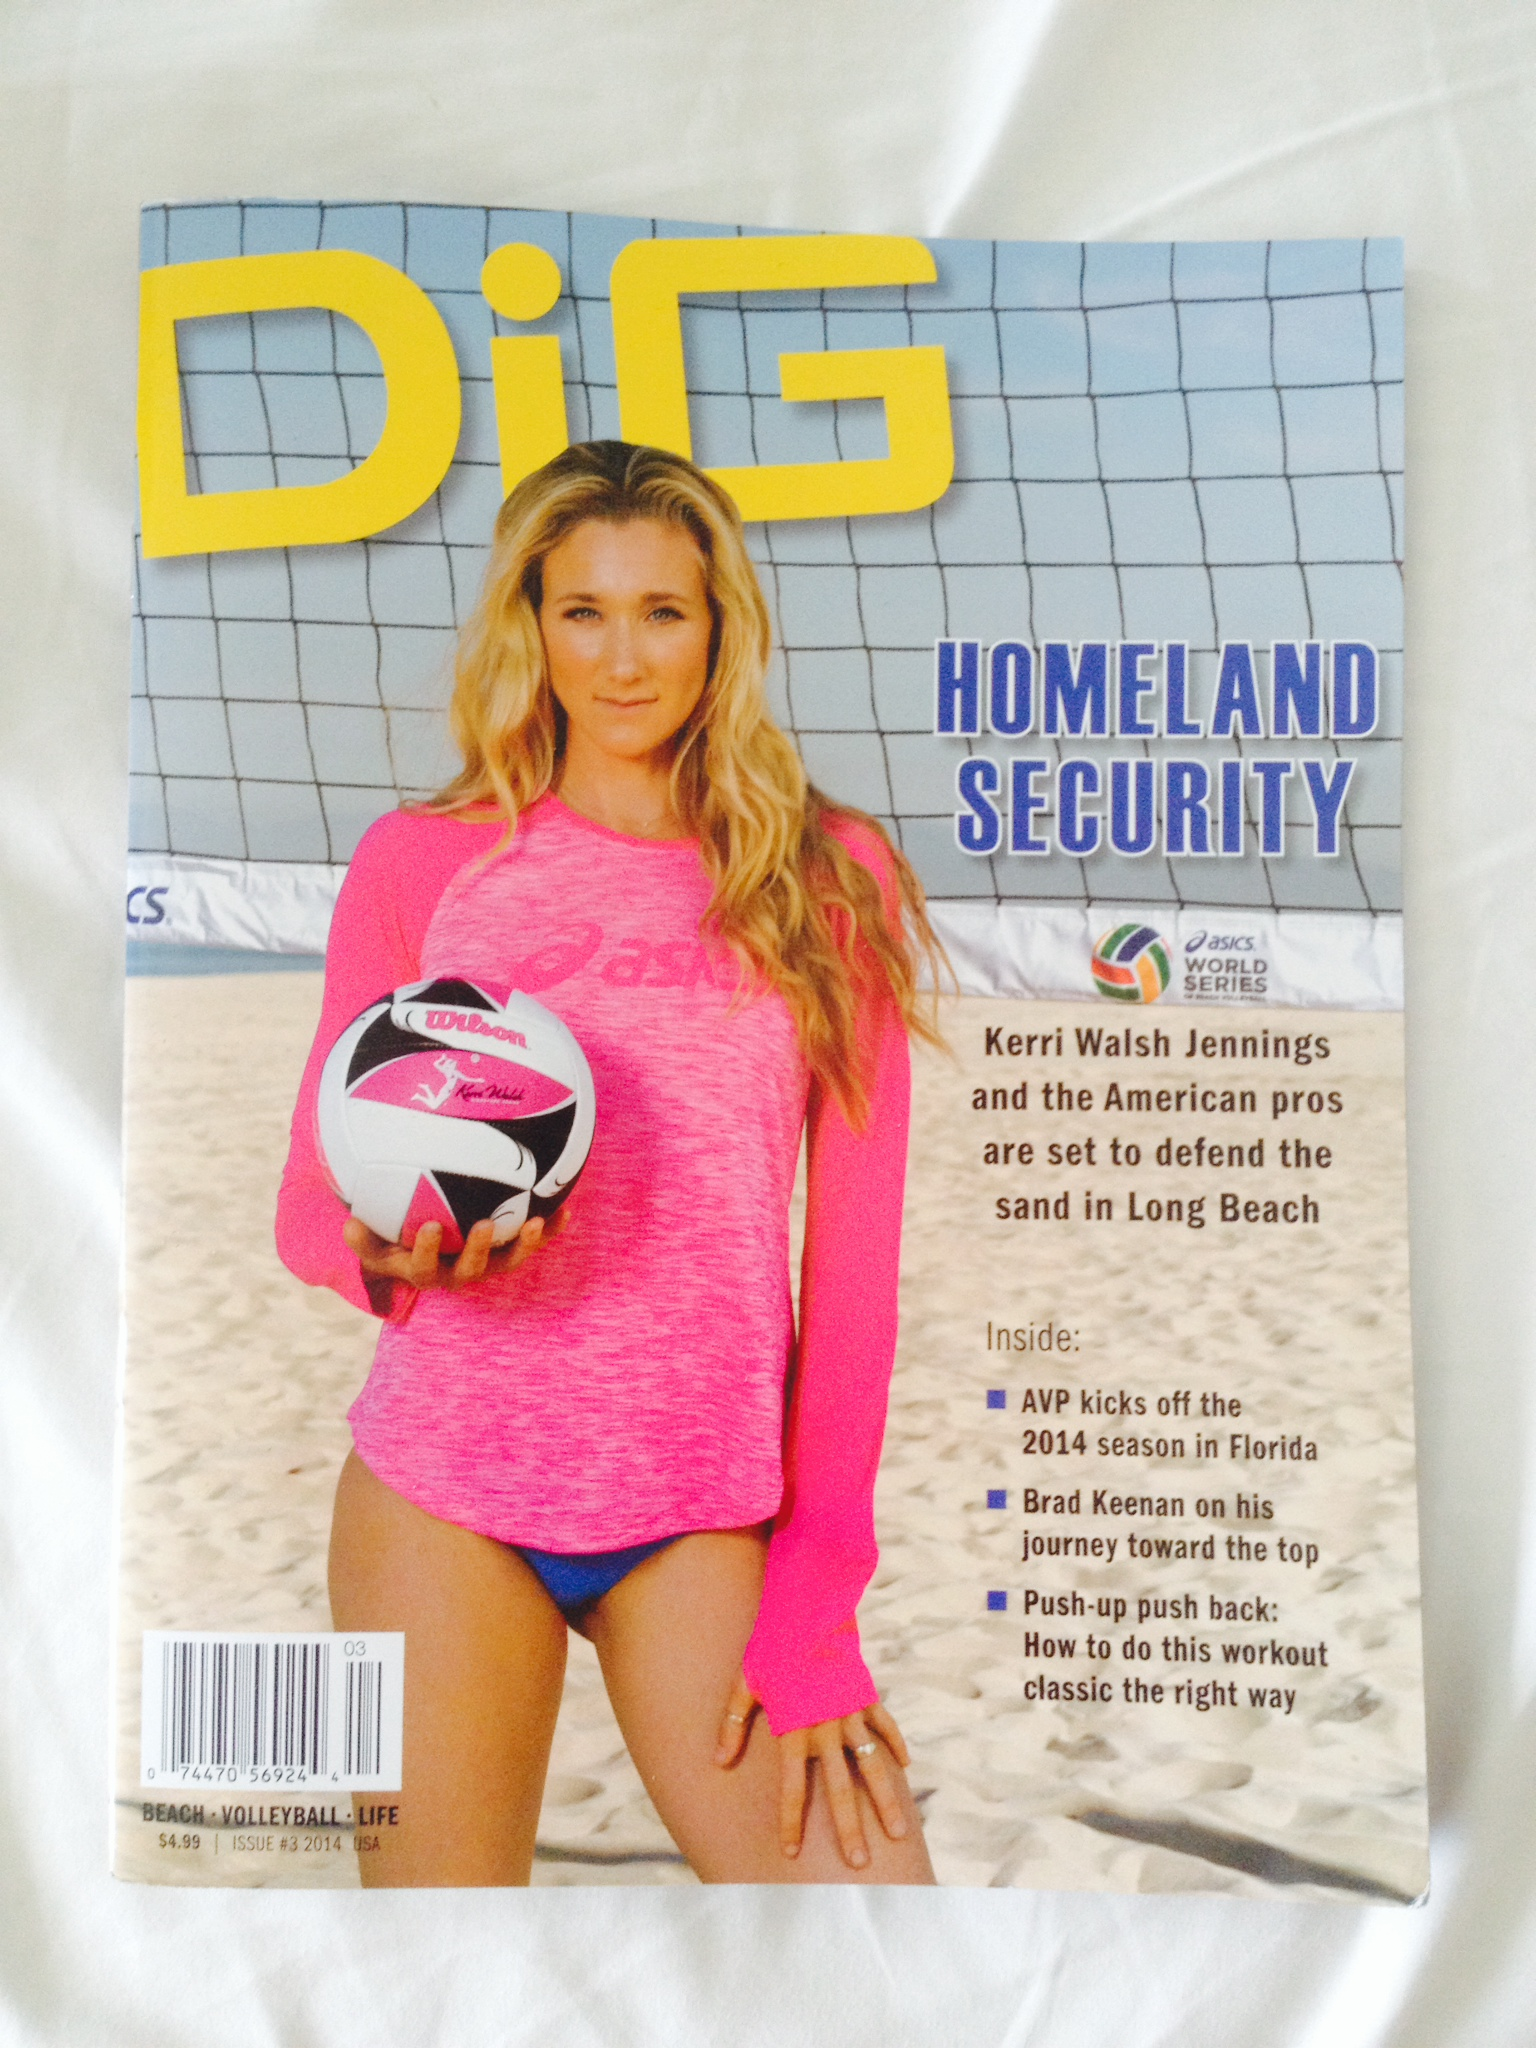 Kerri Walsh rocking the ASICS long sleeve in pink. This weekend's WIN at the Long Beach tournament gets them points on the road to the 2016 Olympics in Rio, where Kerri will be competing for her 4th Gold medal, this time with new partner, the very accomplished April Ross.